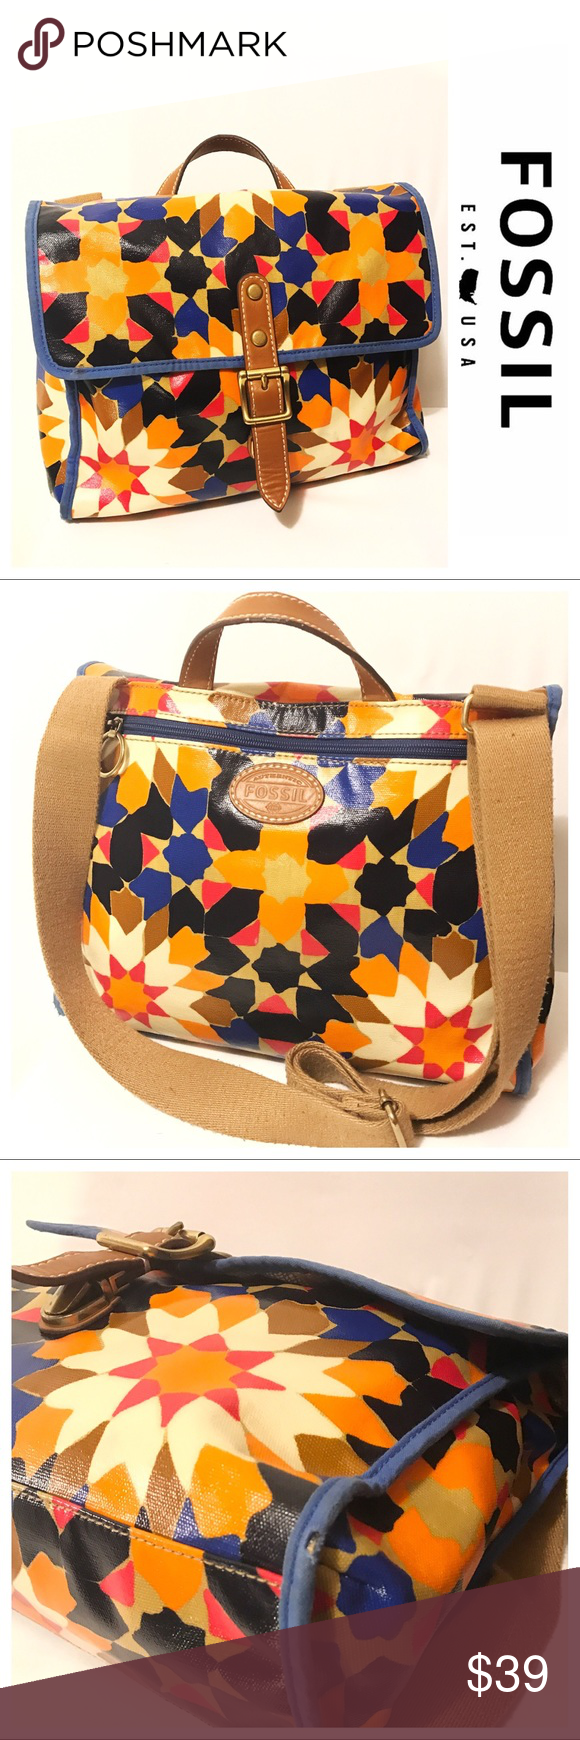 """Fossil Starburst Keyper Messenger Bag Very colorful Fossil Starburst pattern keyper messenger bag.  Orange, black, red, blue and tans make up this awesome vinyl coated  bag.  Blue cloth trim and leather strap with brass hardware and clip lock.  Canvas shoulder strap measures 12-24"""" Fossil Bags Crossbody Bags"""